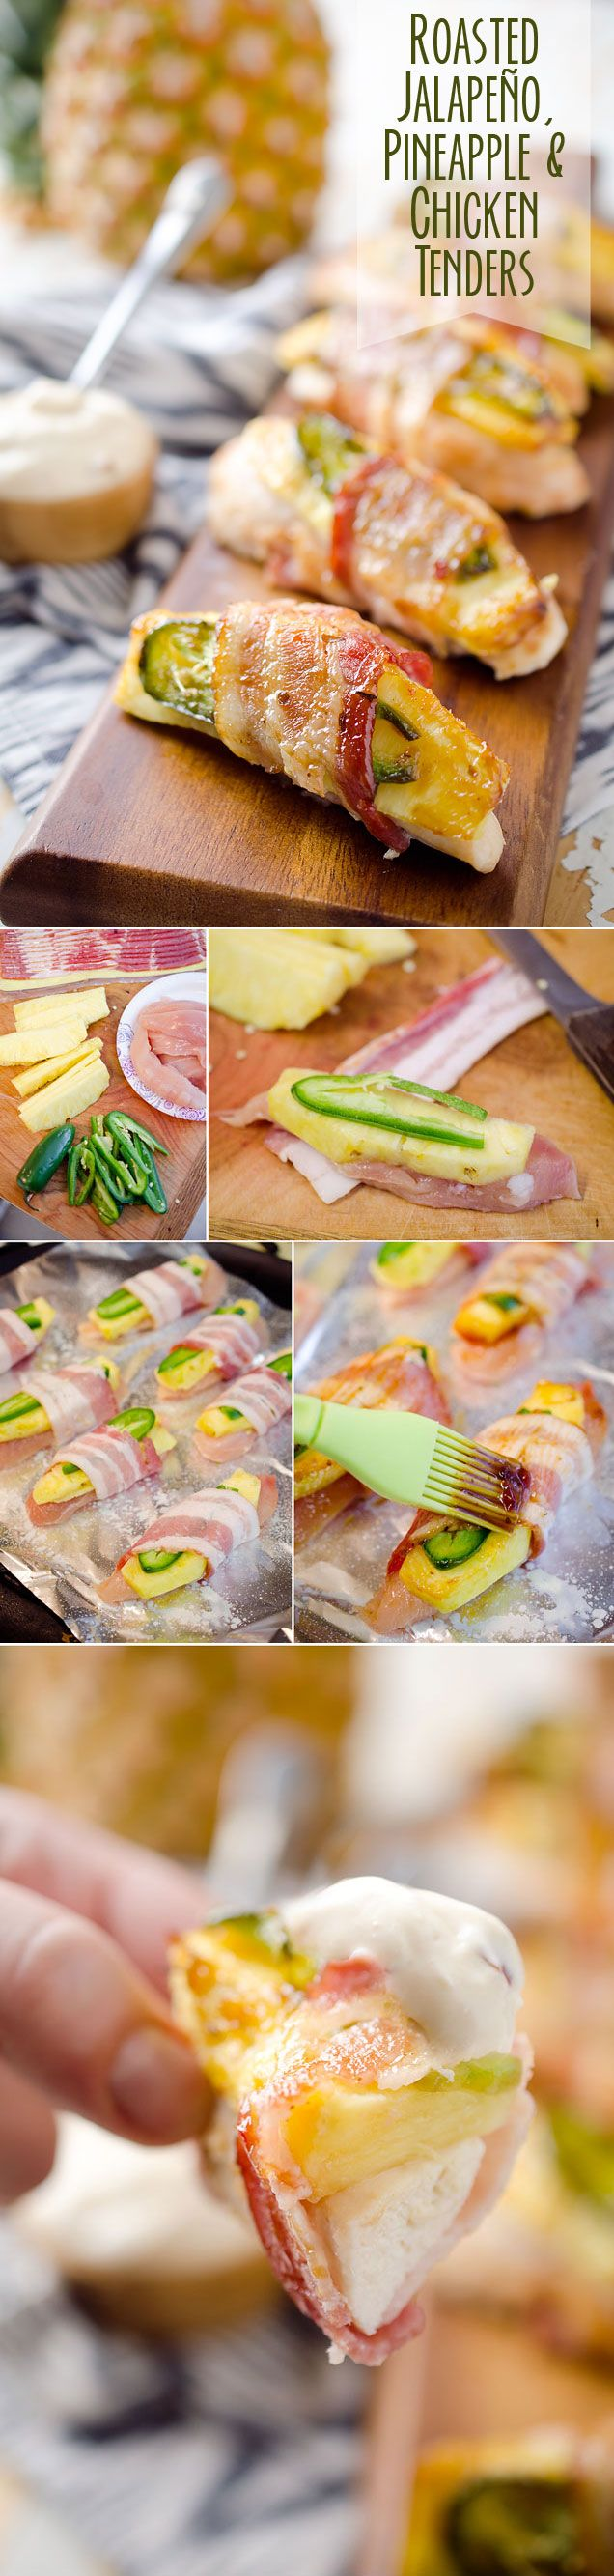 Roasted Jalapeño, Pineapple & Chicken Tenders - Juicy pieces of chicken breast wrapped up with a slice of jalapeño and pineapple in a flavorful piece of bacon served with a spicy szechuan Greek yogurt sauce. These make a great appetizer recipe or a fun and healthy dinner idea! #Chicken #Bacon #Light #Healthy